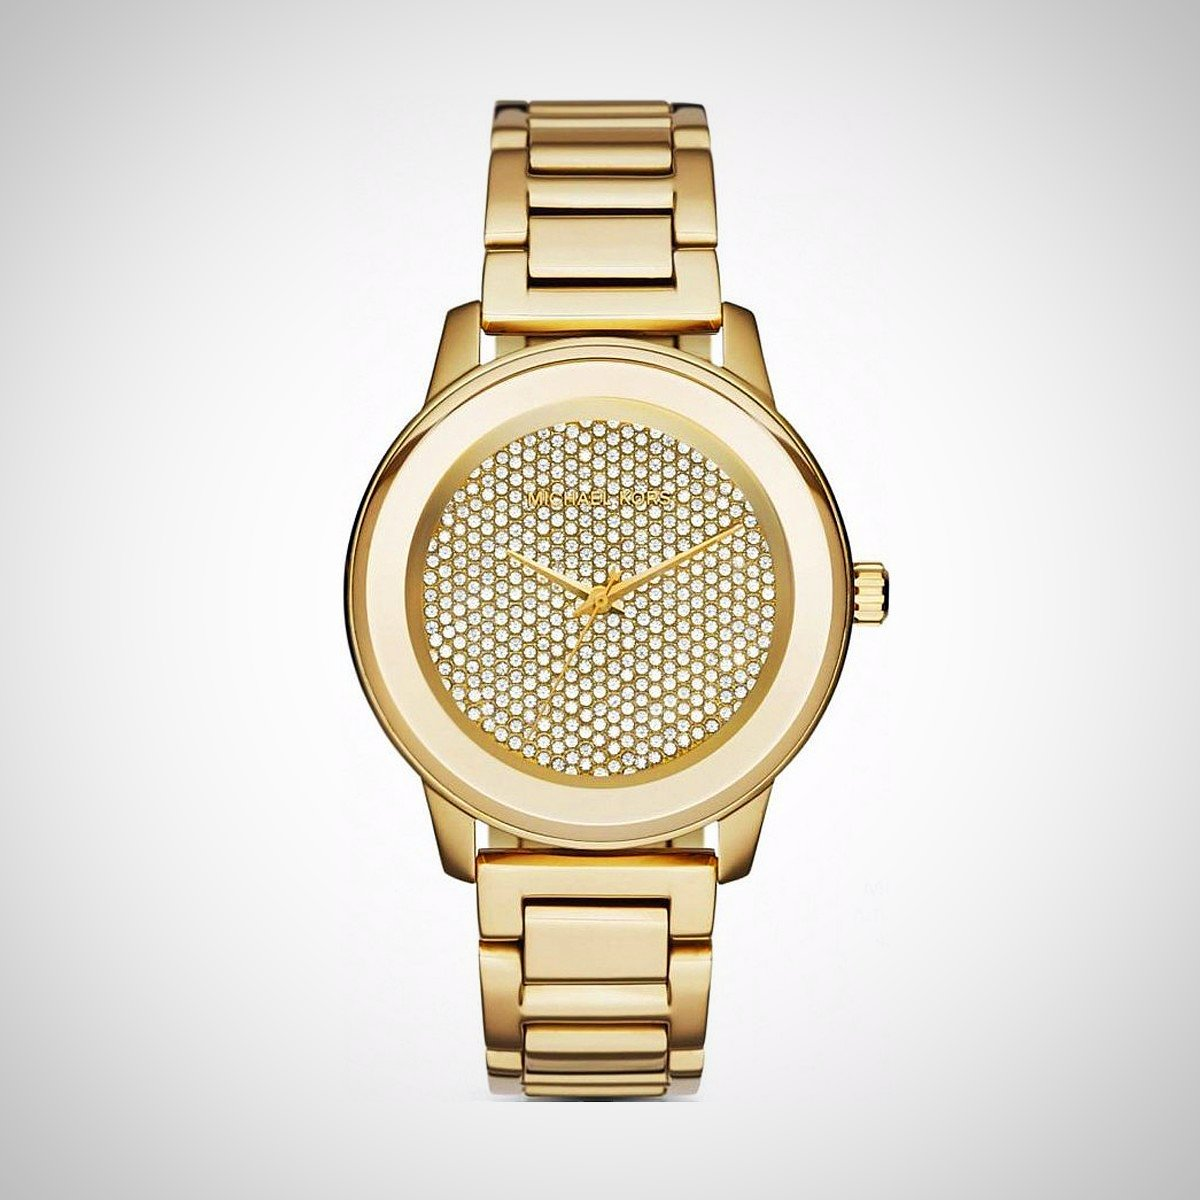 Michael Kors MK6209 Ladies Kinley Pav Gold Tone Watch